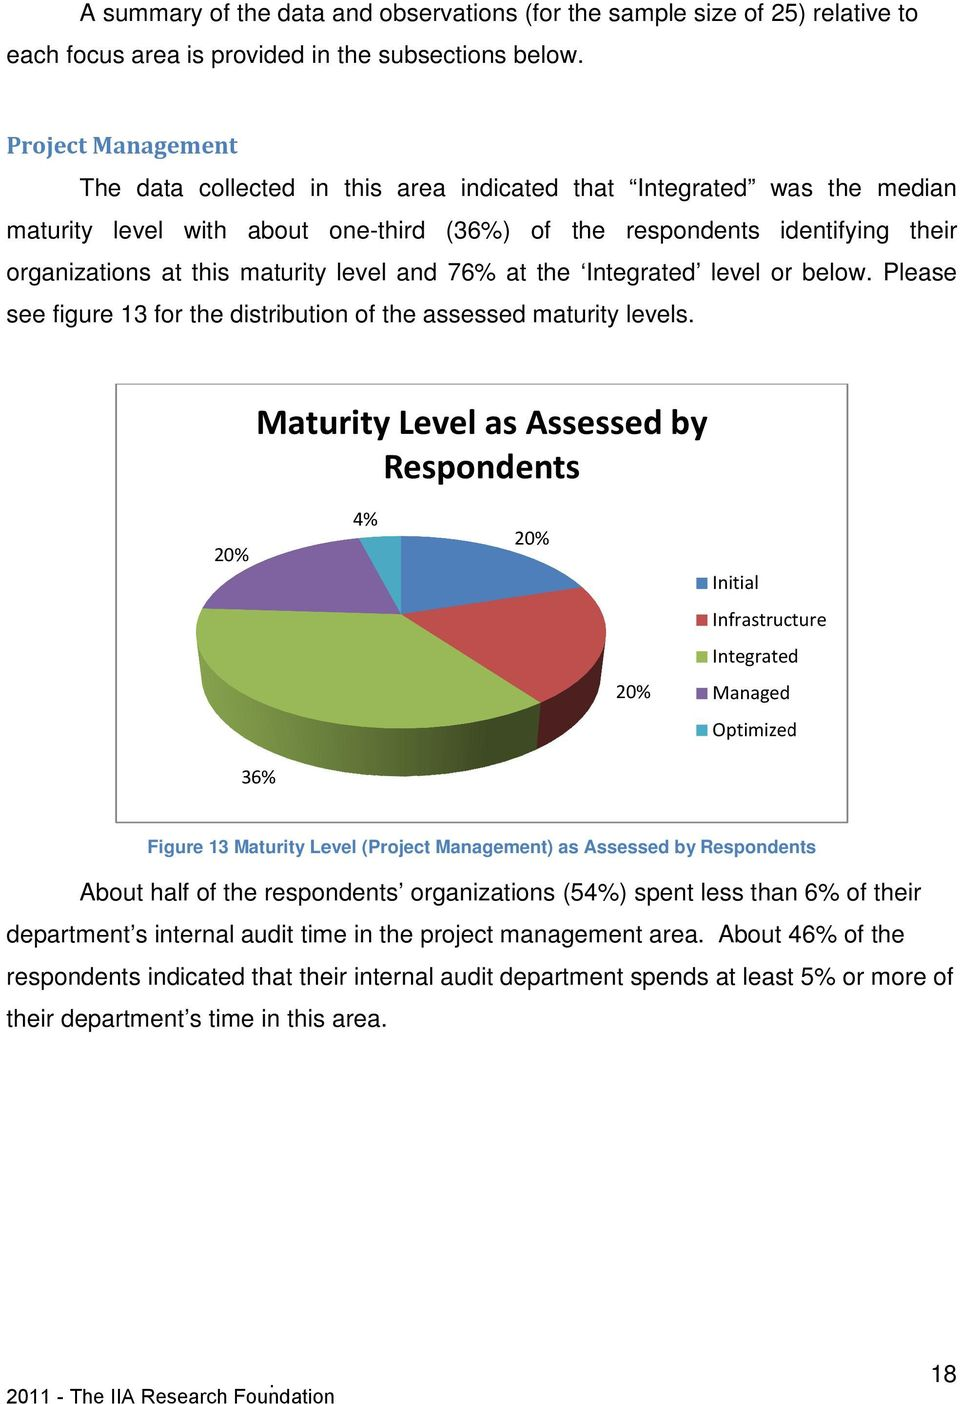 maturity level and 76% at the Integrated level or below. Please see figure 13 for the distribution of the assessed maturity levels.